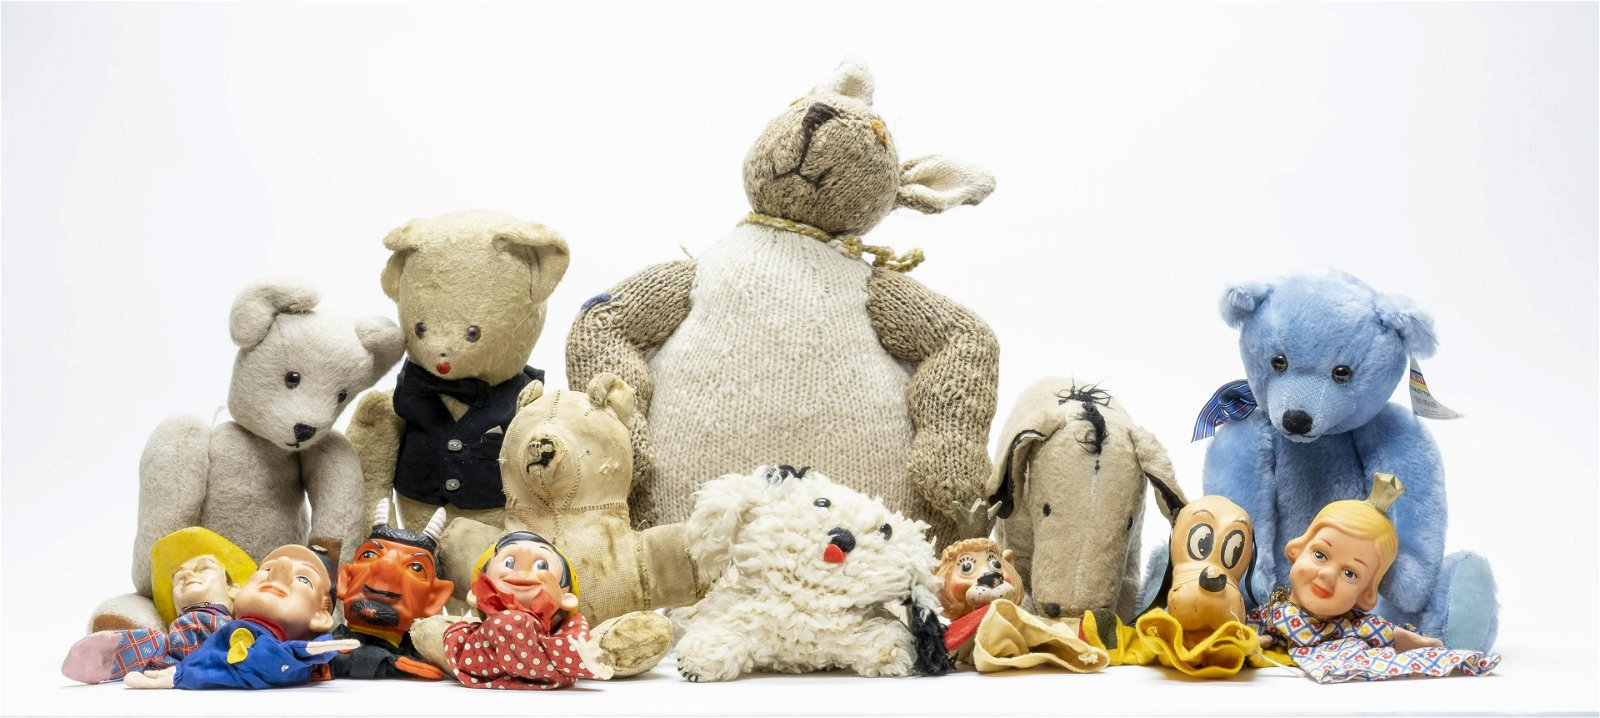 Large Group of Stuffed Animals and Finger Puppets